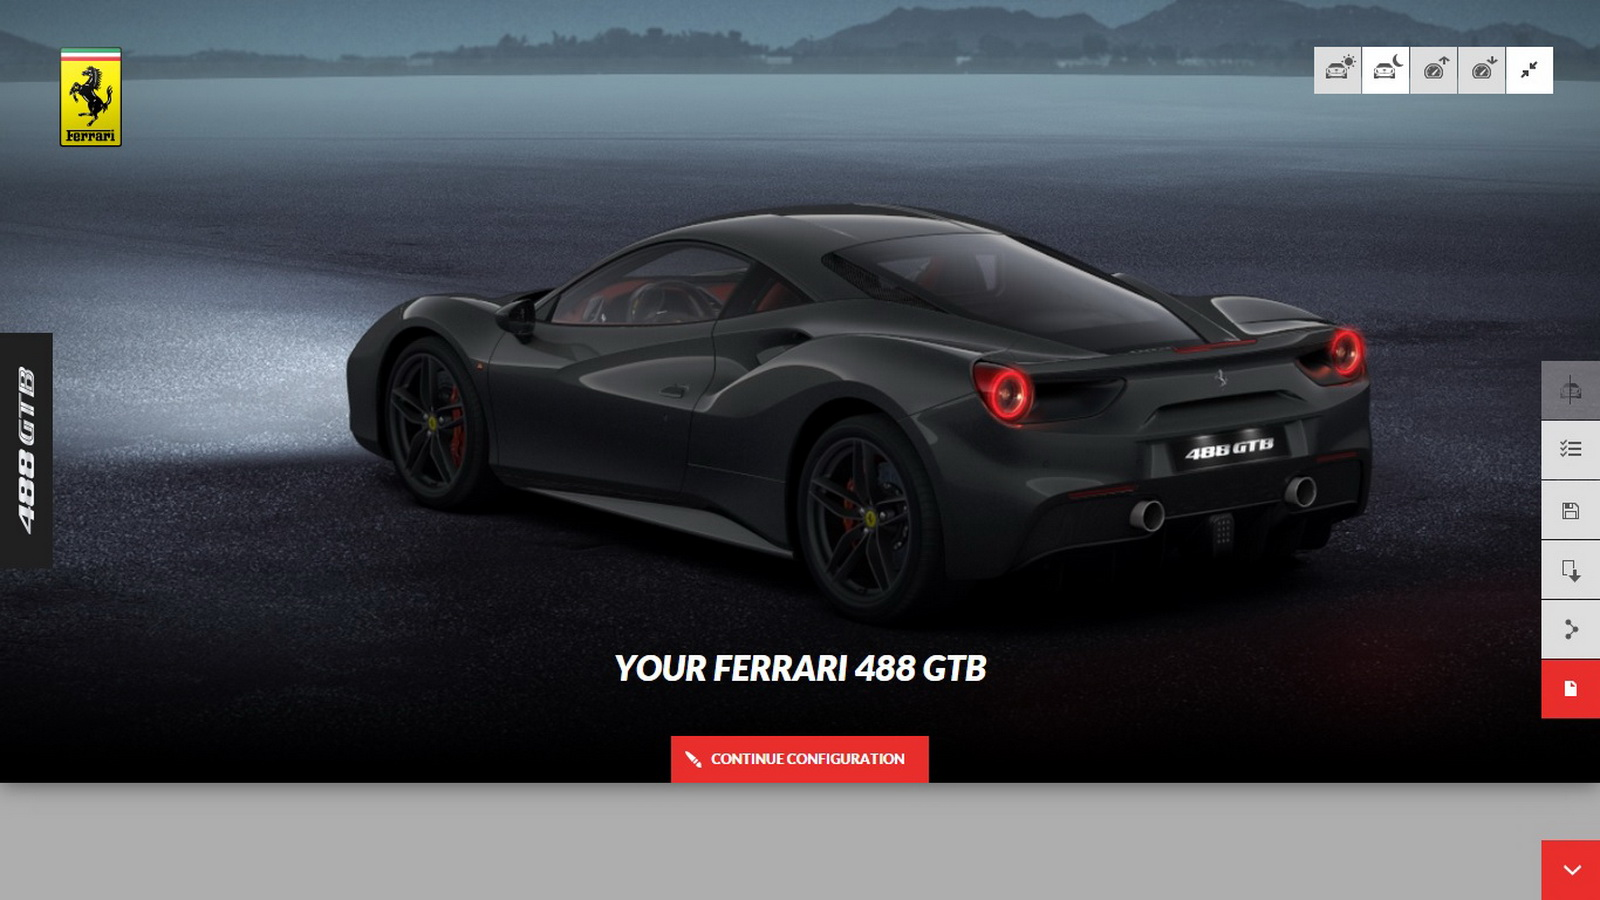 you can now build your own 488gtb on ferrari's configurator